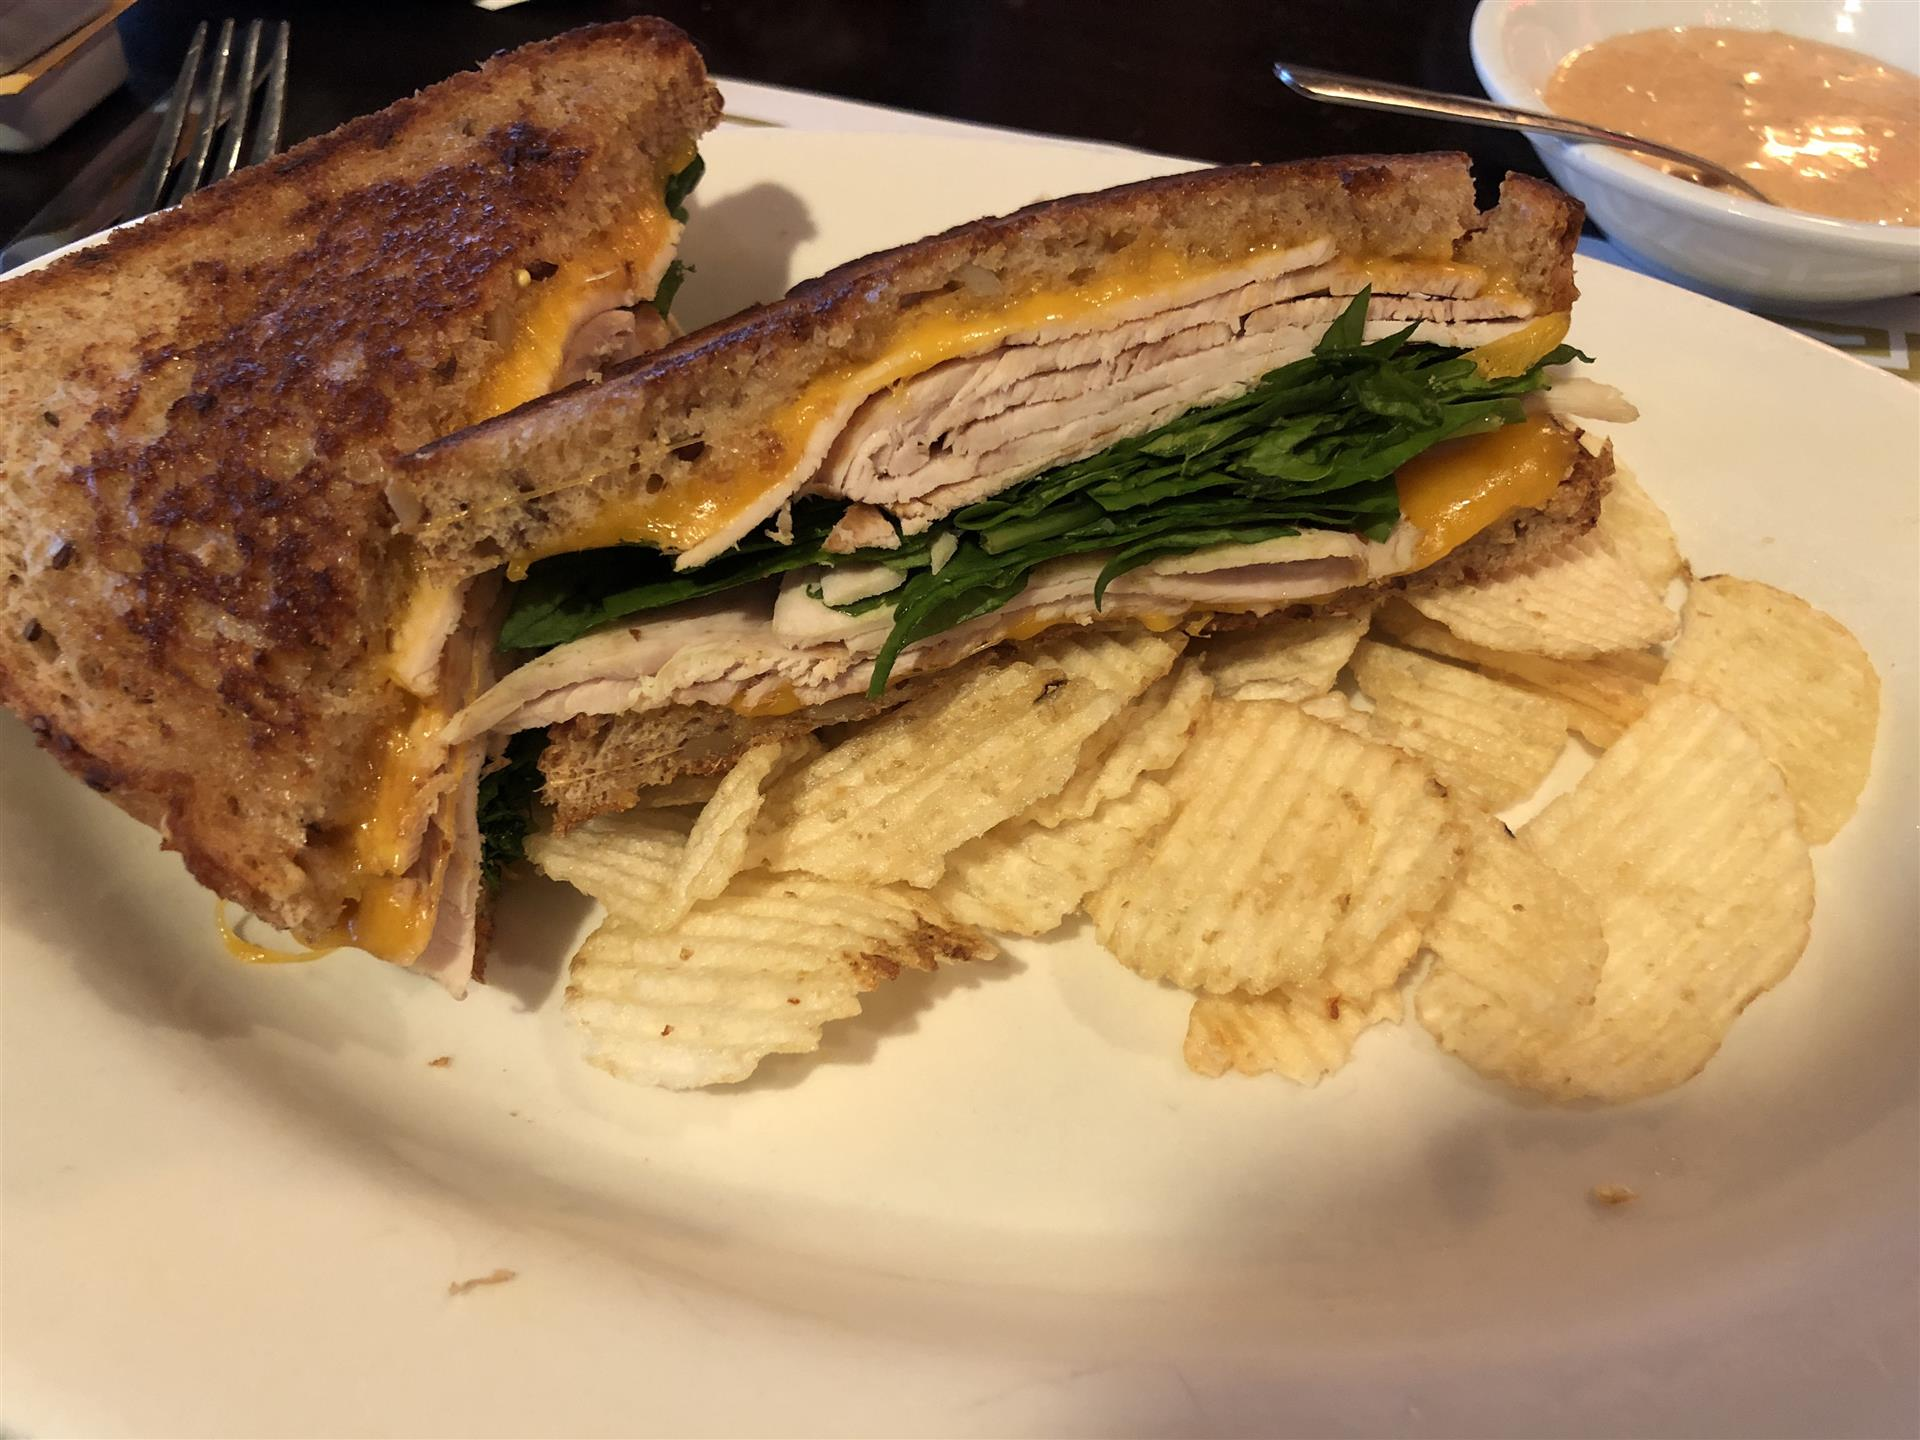 turkey, spinach and cheese melt, with a side of chips